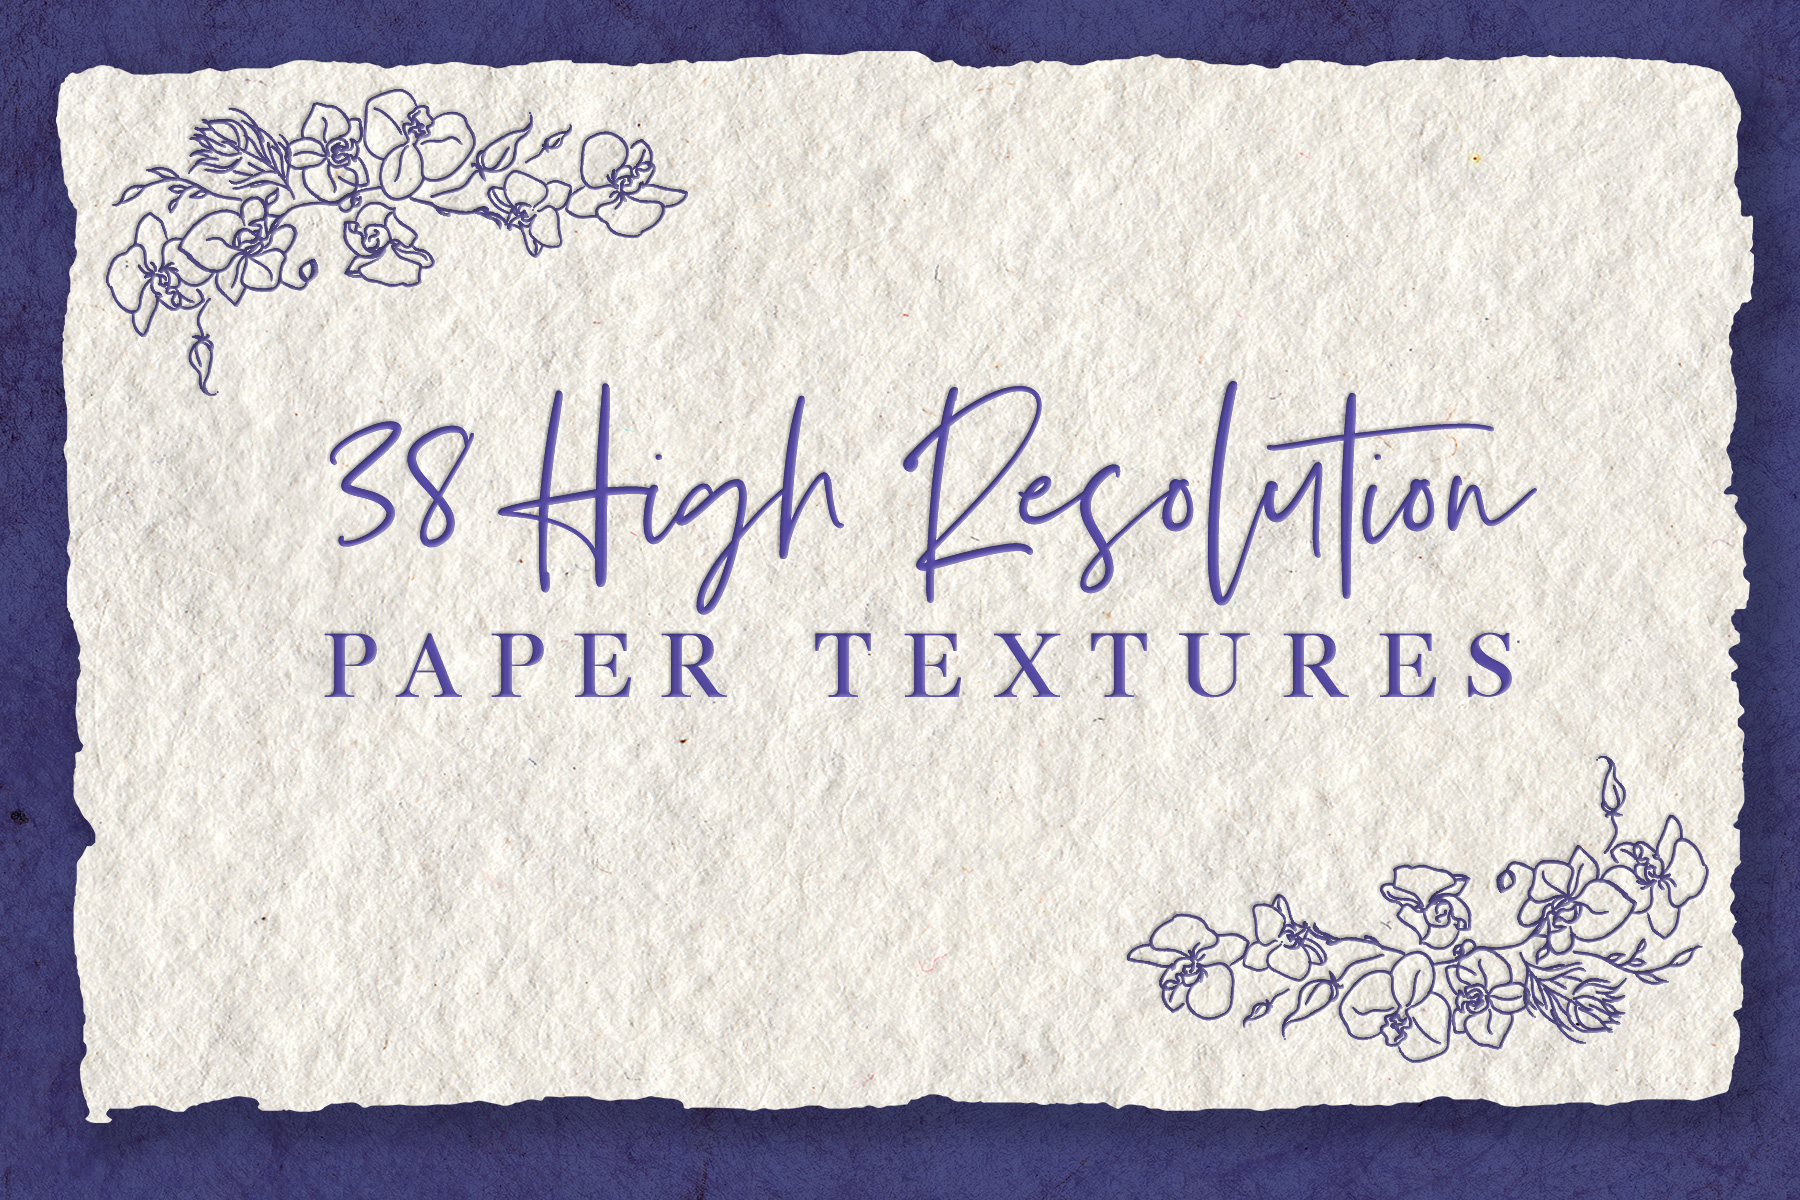 38 High Resolution Paper Textures for Your Creative Designs